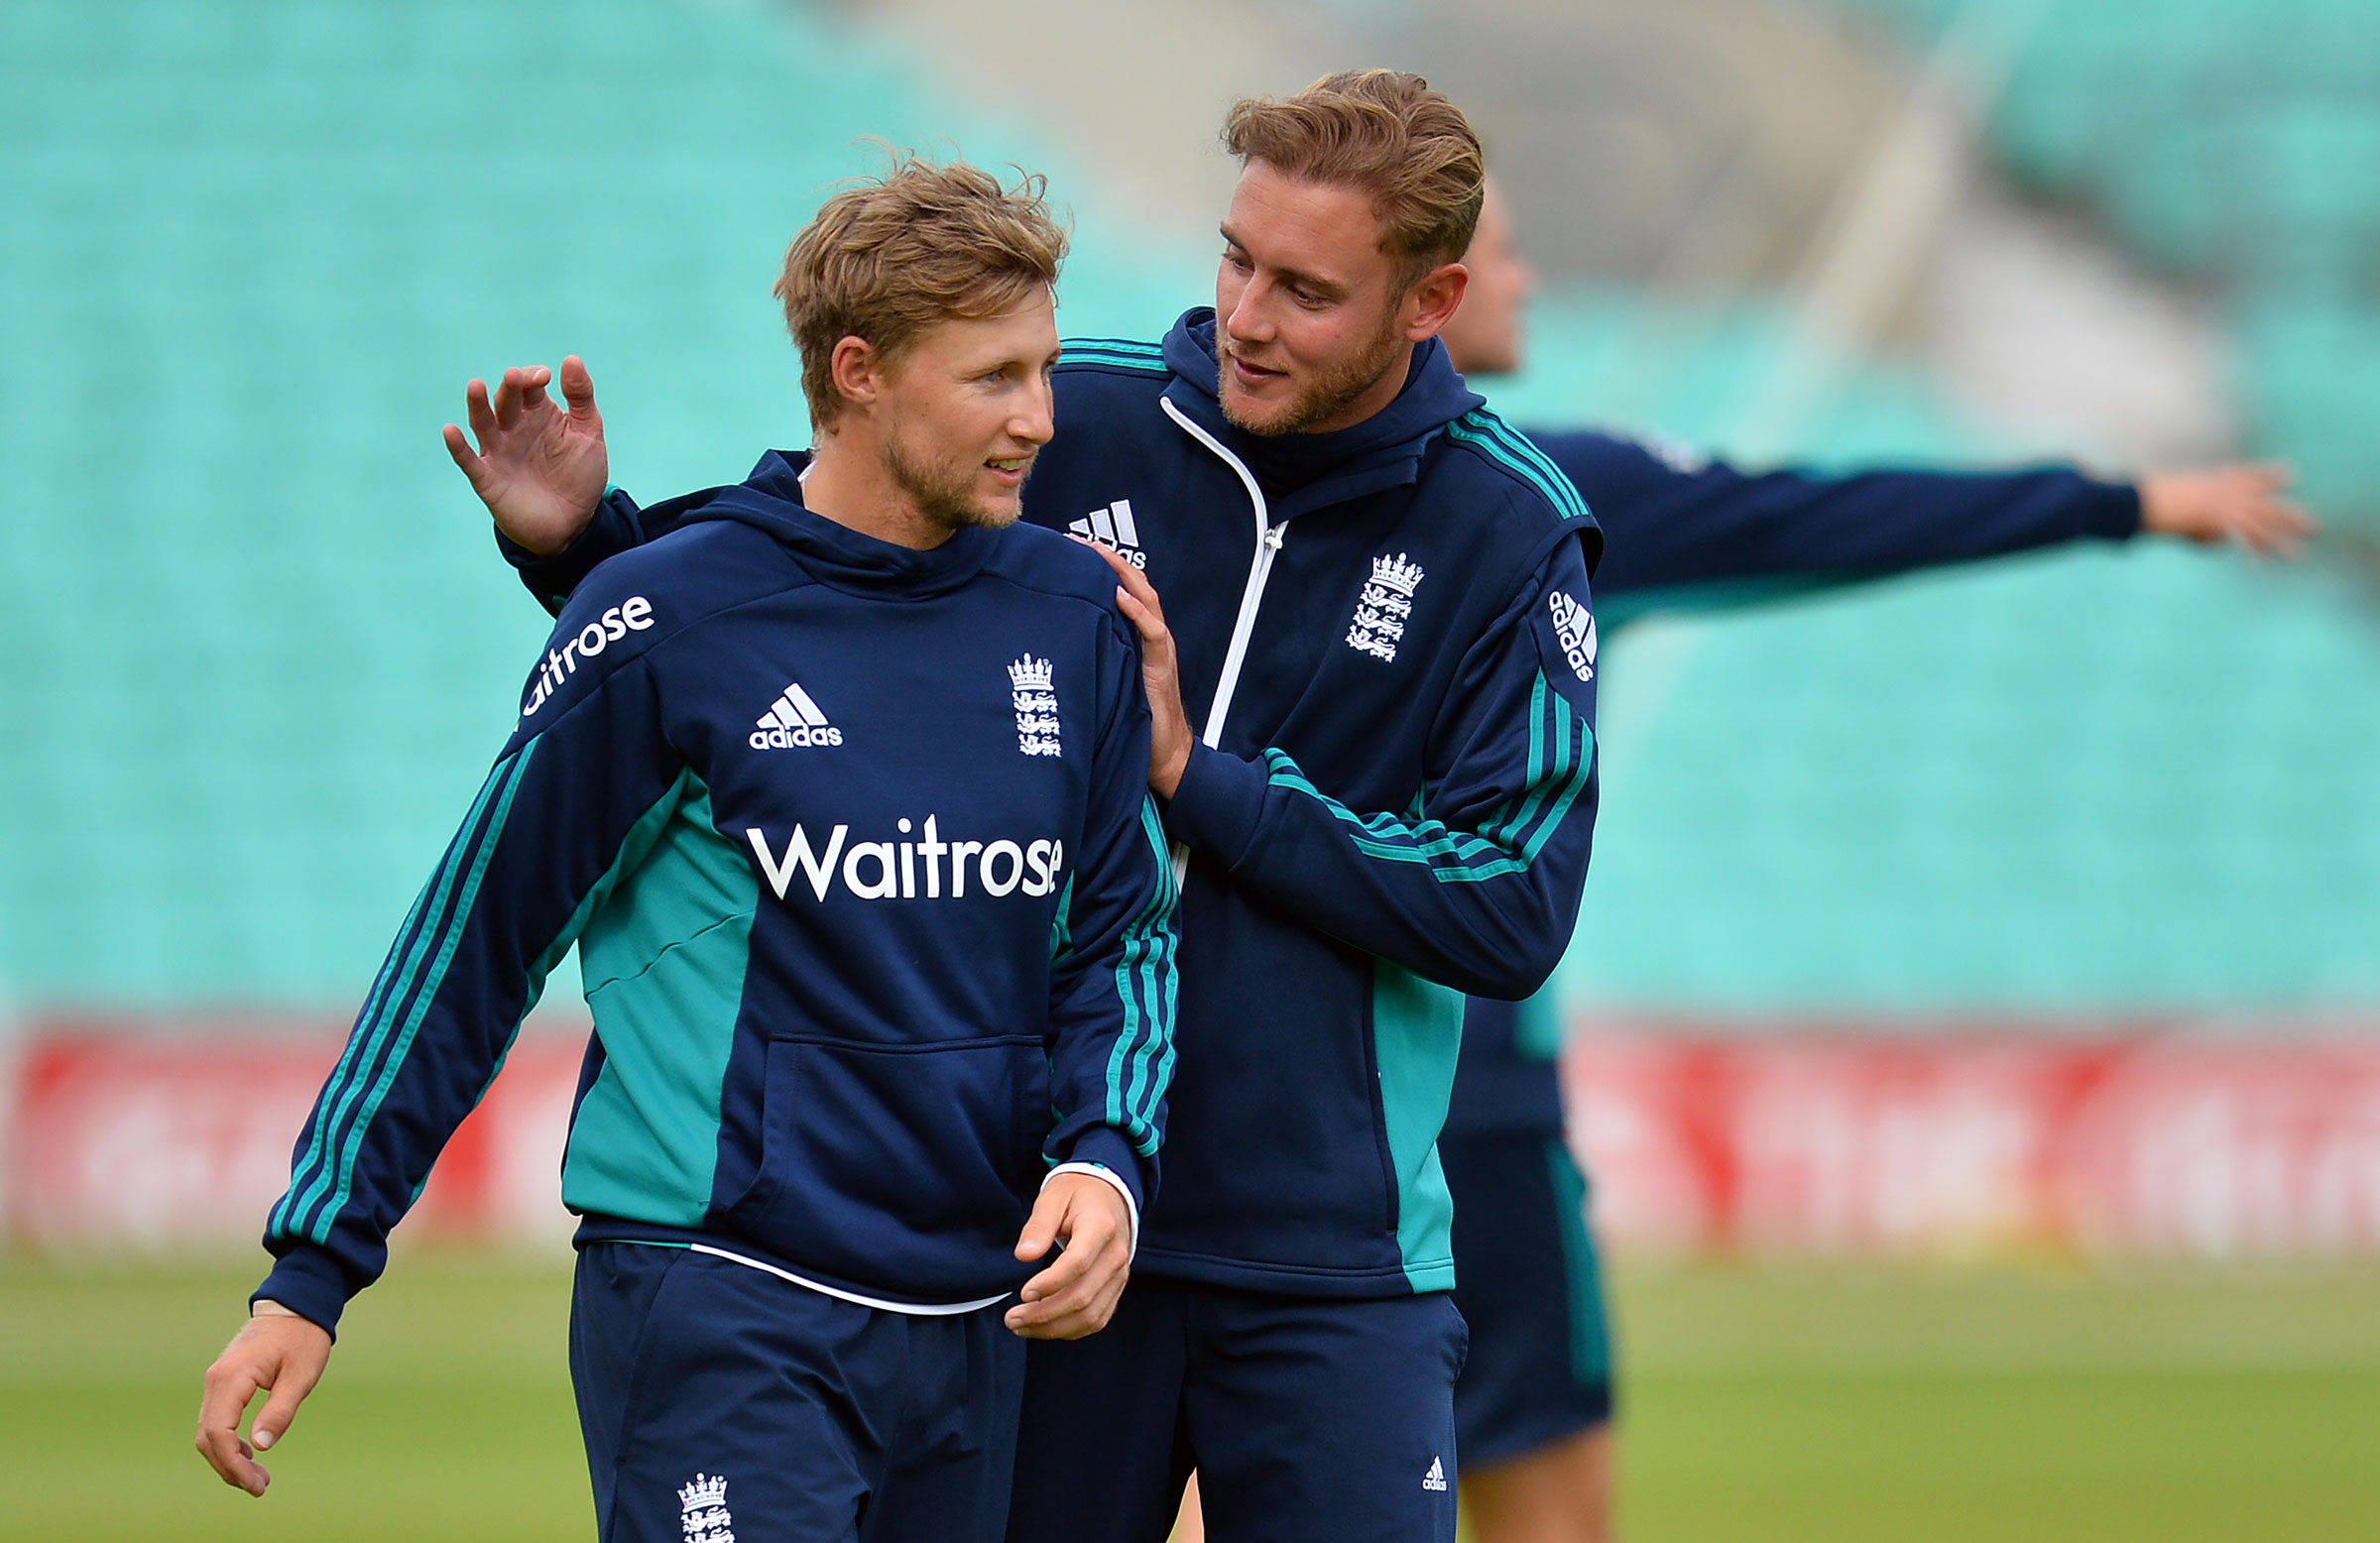 Joe Root raring to go as new England Test captain